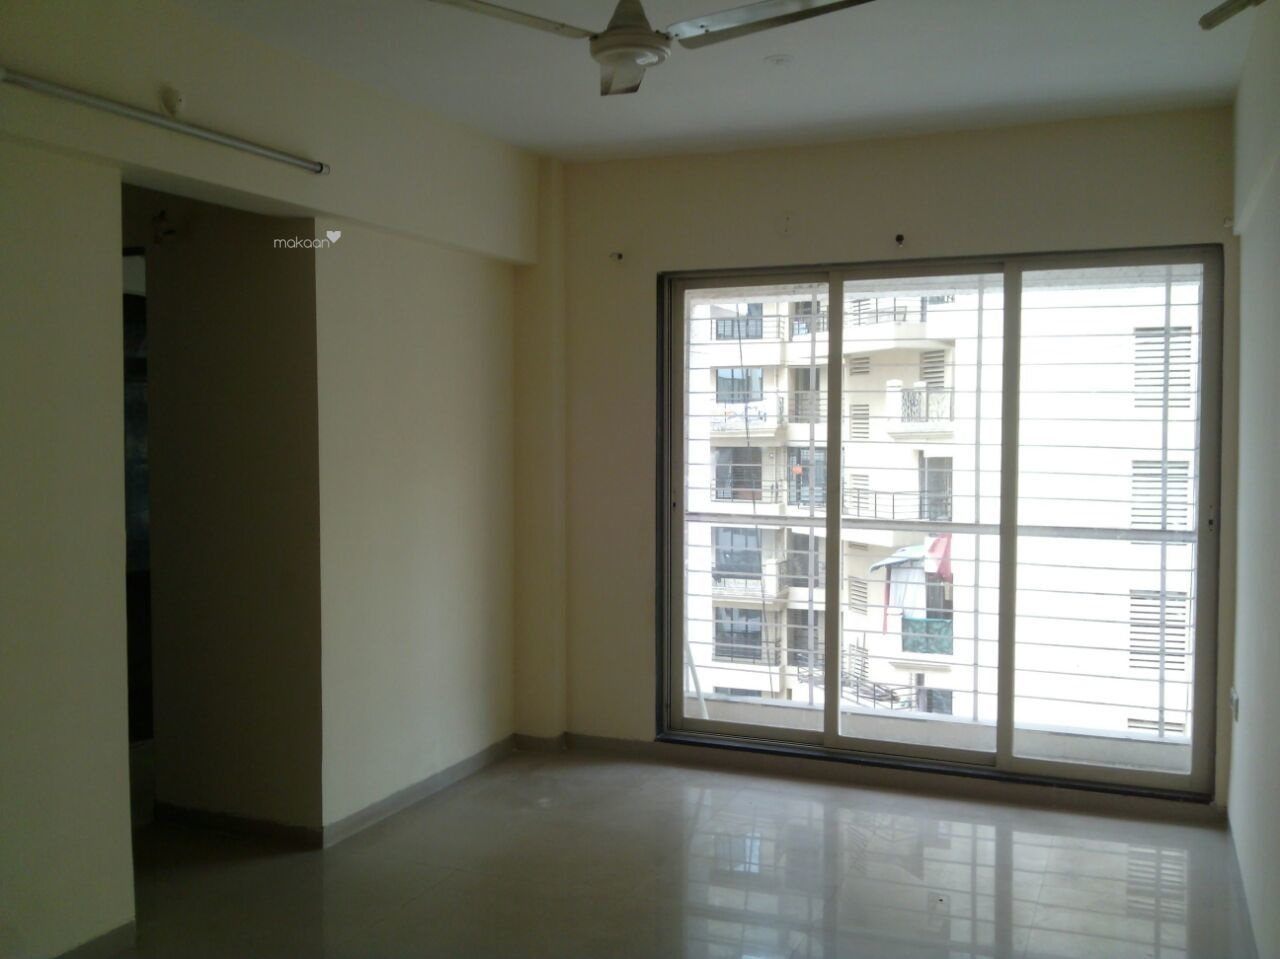 1200 sq ft 3BHK 3BHK+3T (1,200 sq ft) Property By Bhoomi Enterprises In Project, Kharghar